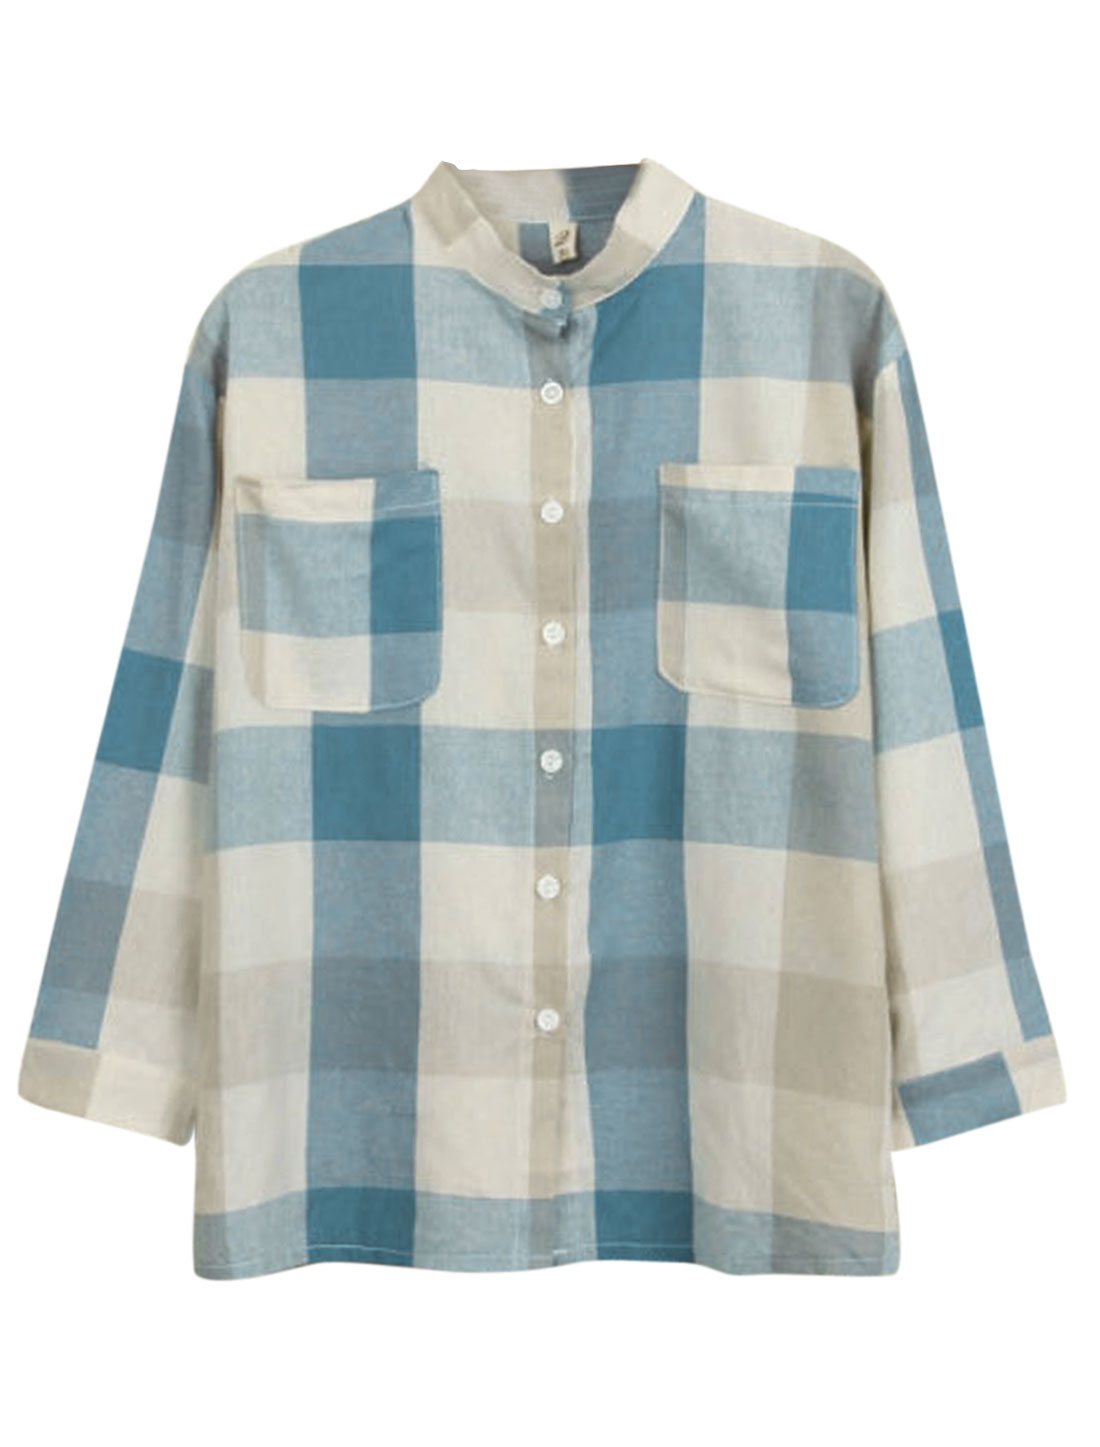 Women Plaids Pattern Single Breasted Bust Pockets Shirt Beige Blue S